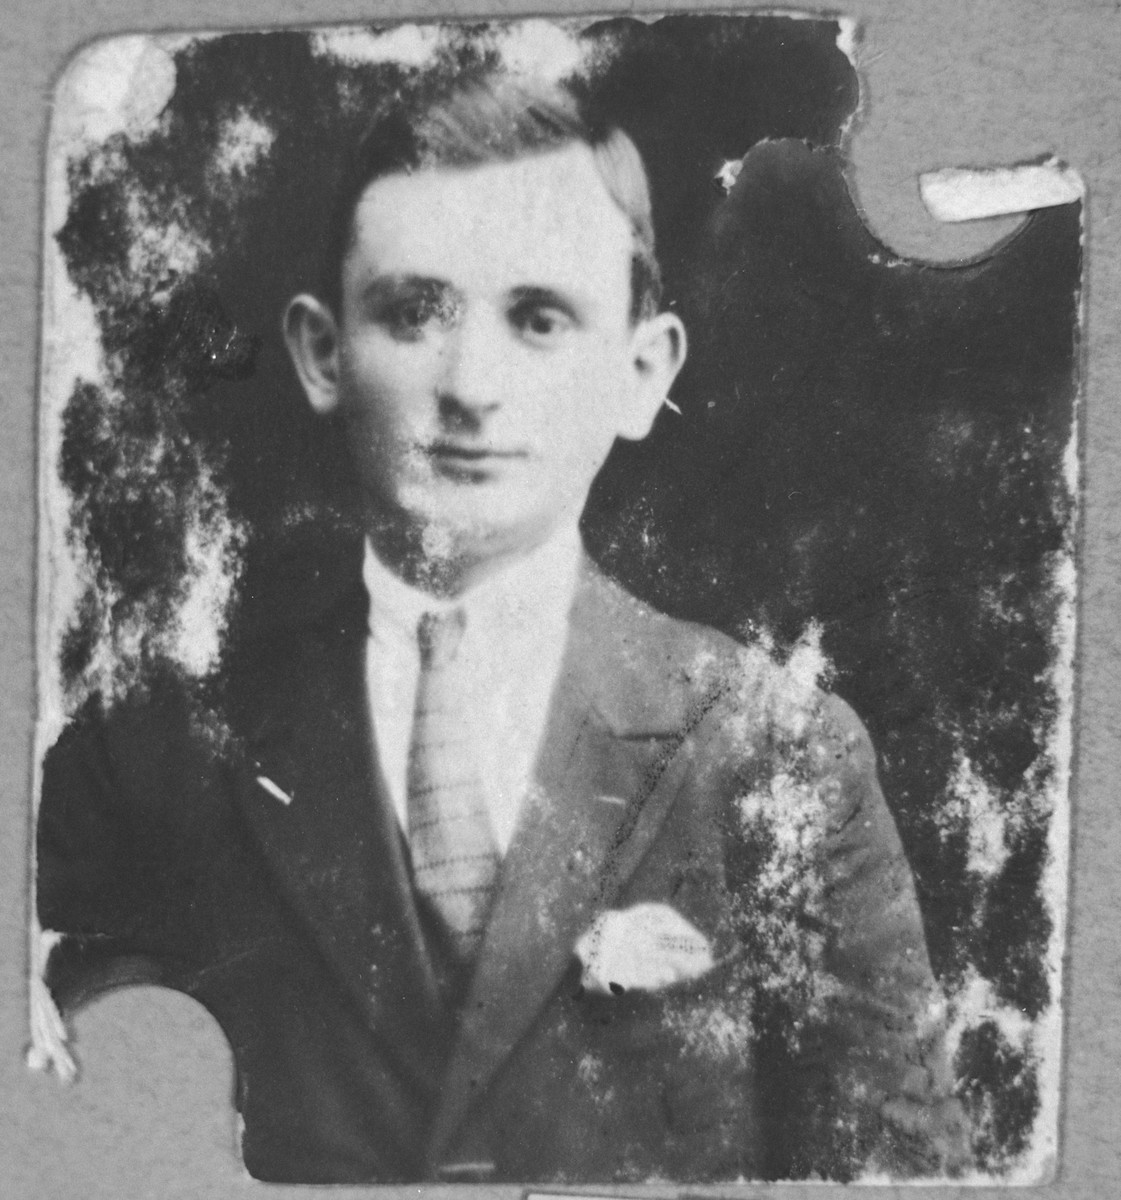 Portrait of Solomon Mosse, son of Shabetai Mosse.  He lived at Karagoryeva 111 in Bitola.